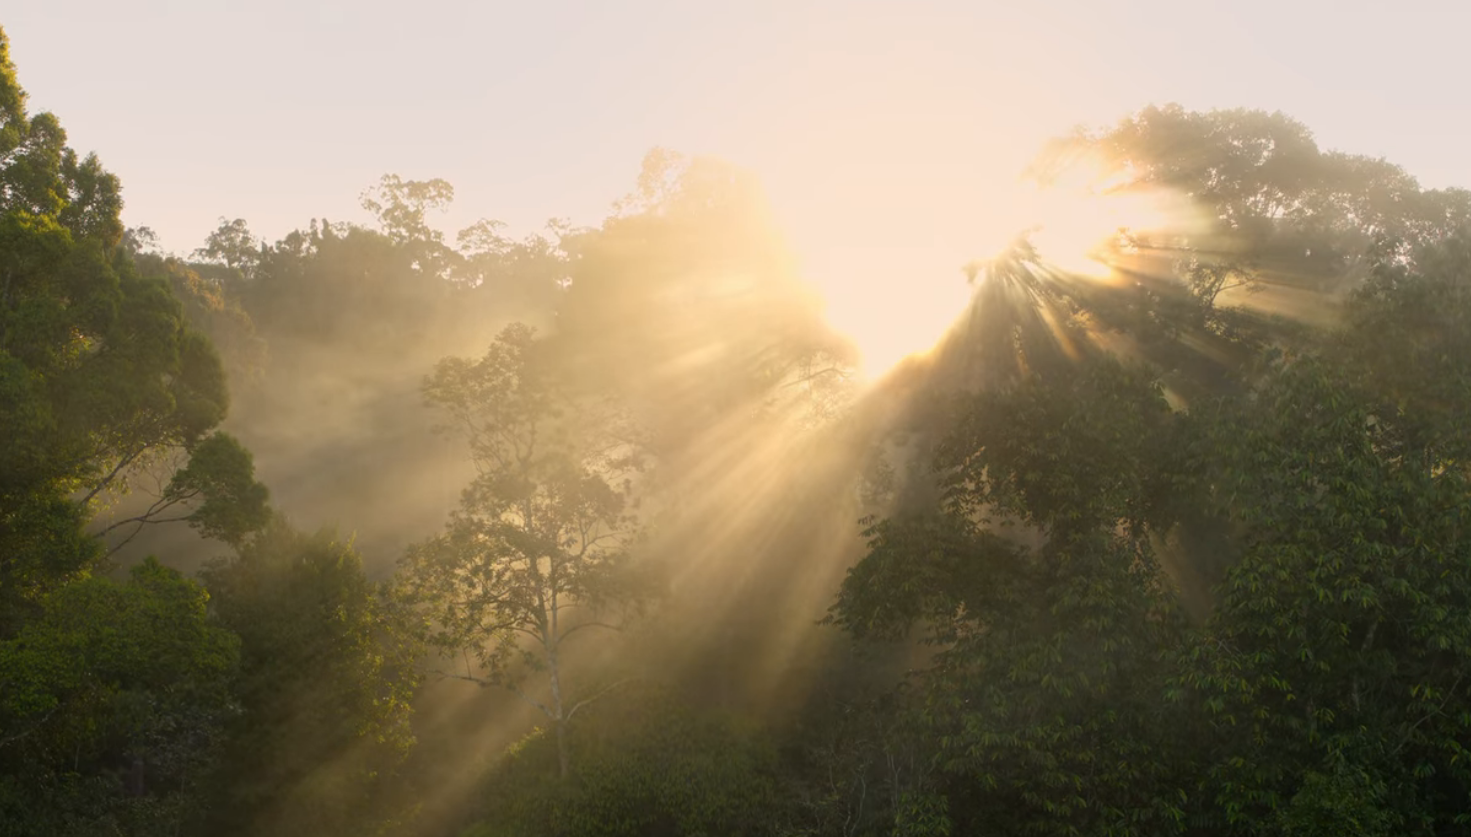 The sun is shining intensely across the treetops of a rainforest.